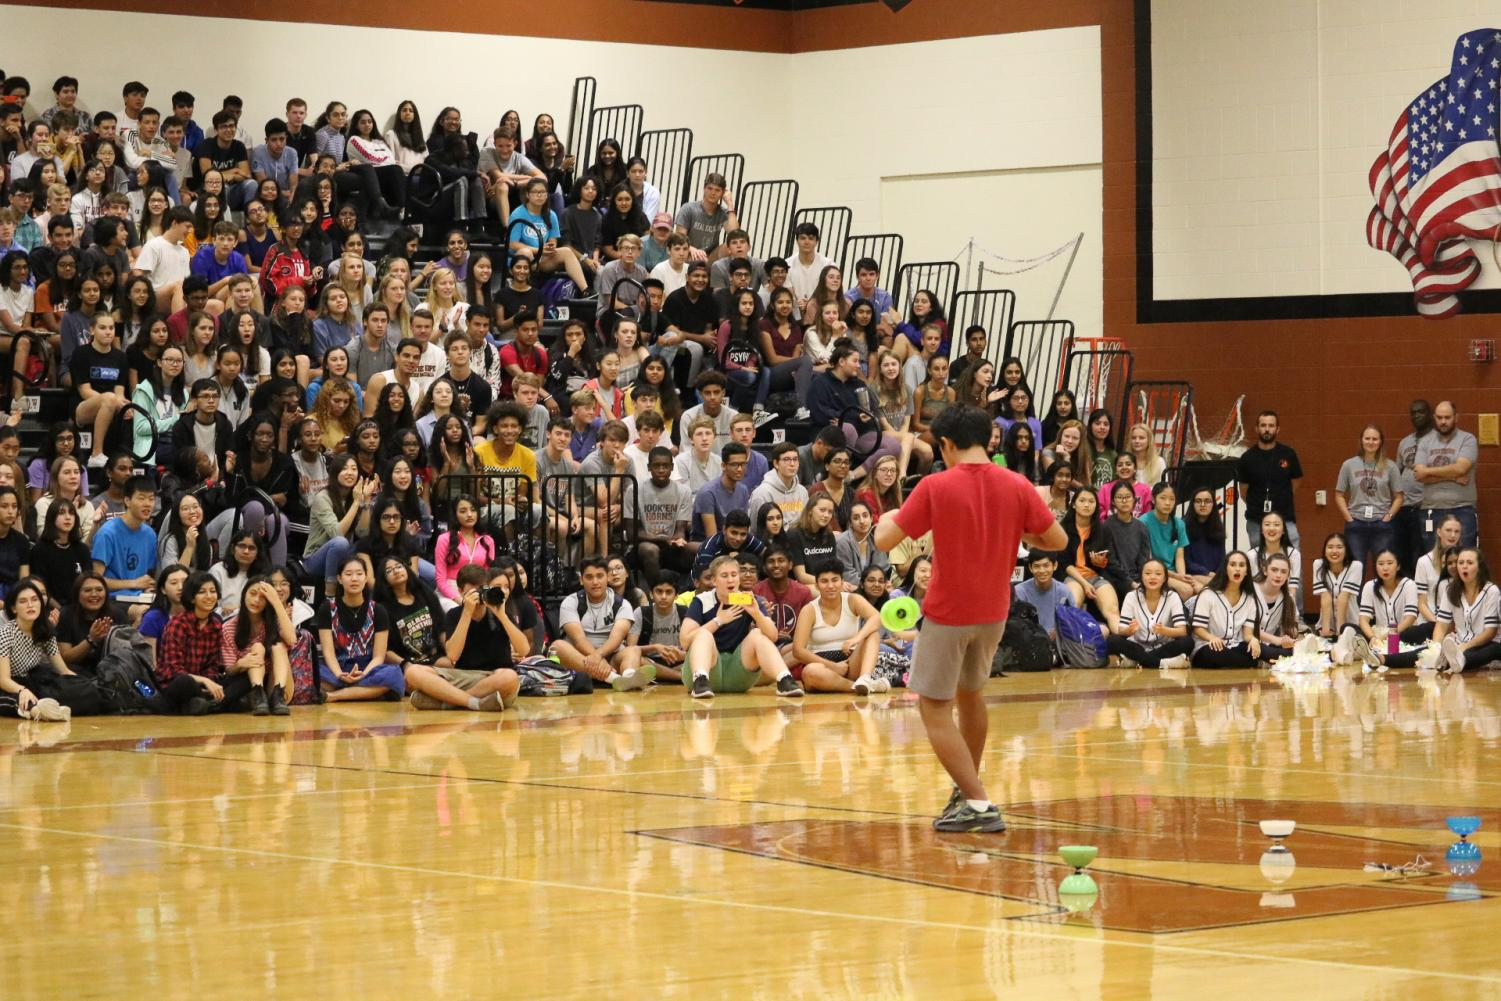 Students+Build+School+Spirit+at+First+Pep+Rally+of+Year